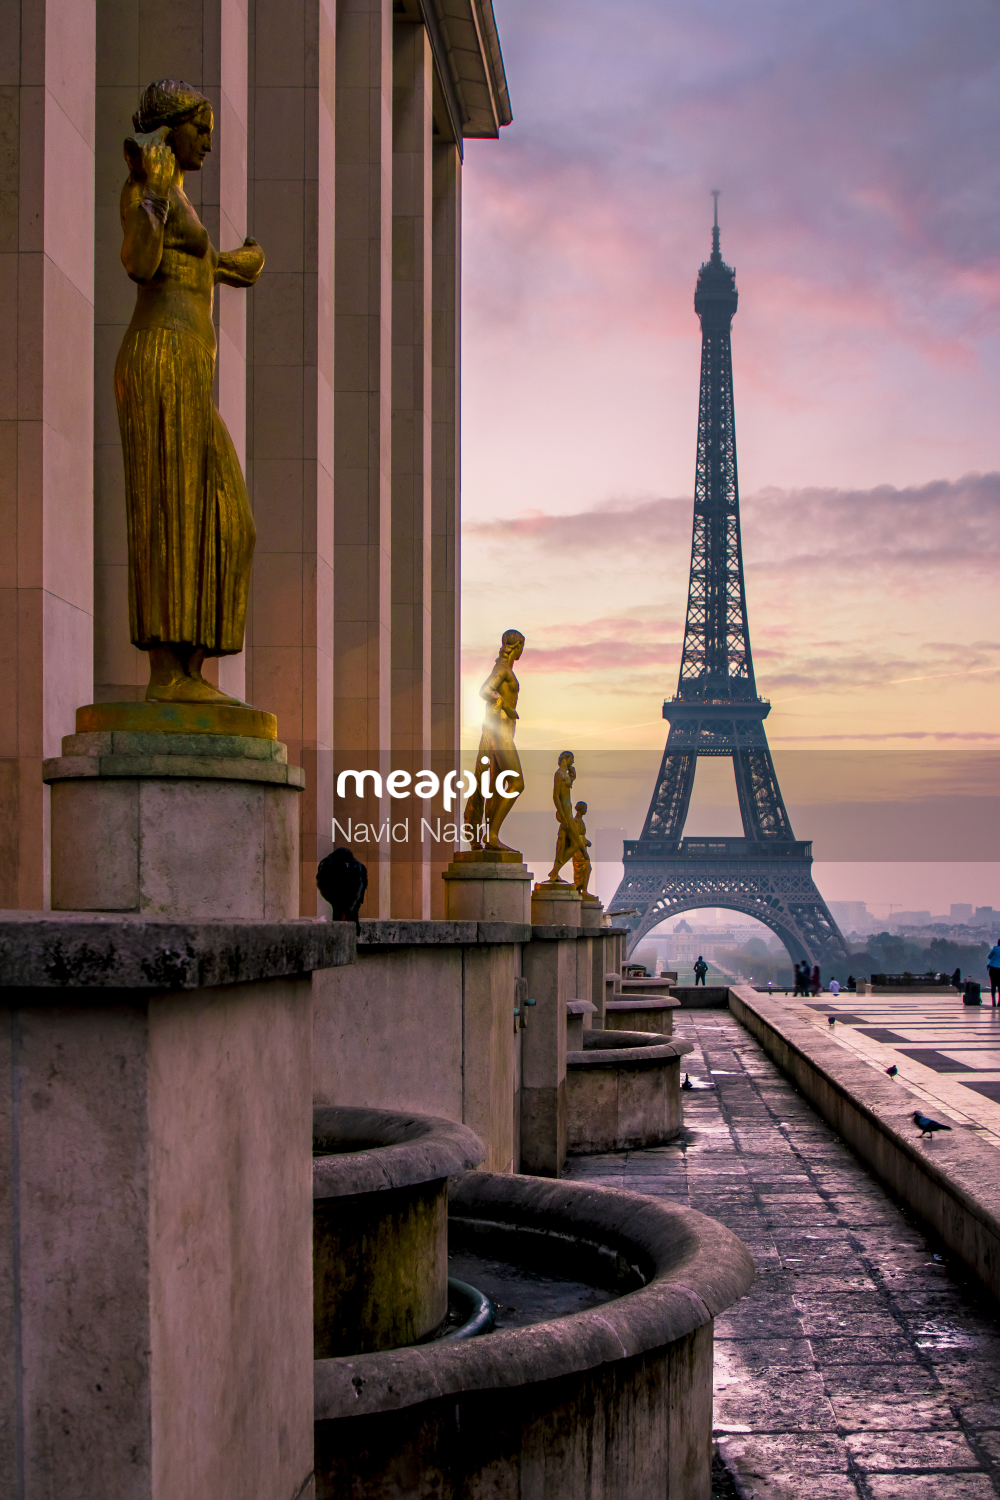 I Am Not Really Confident, But Clock Tower On Top Of A Wooden Pole Stock Photo · Meapic